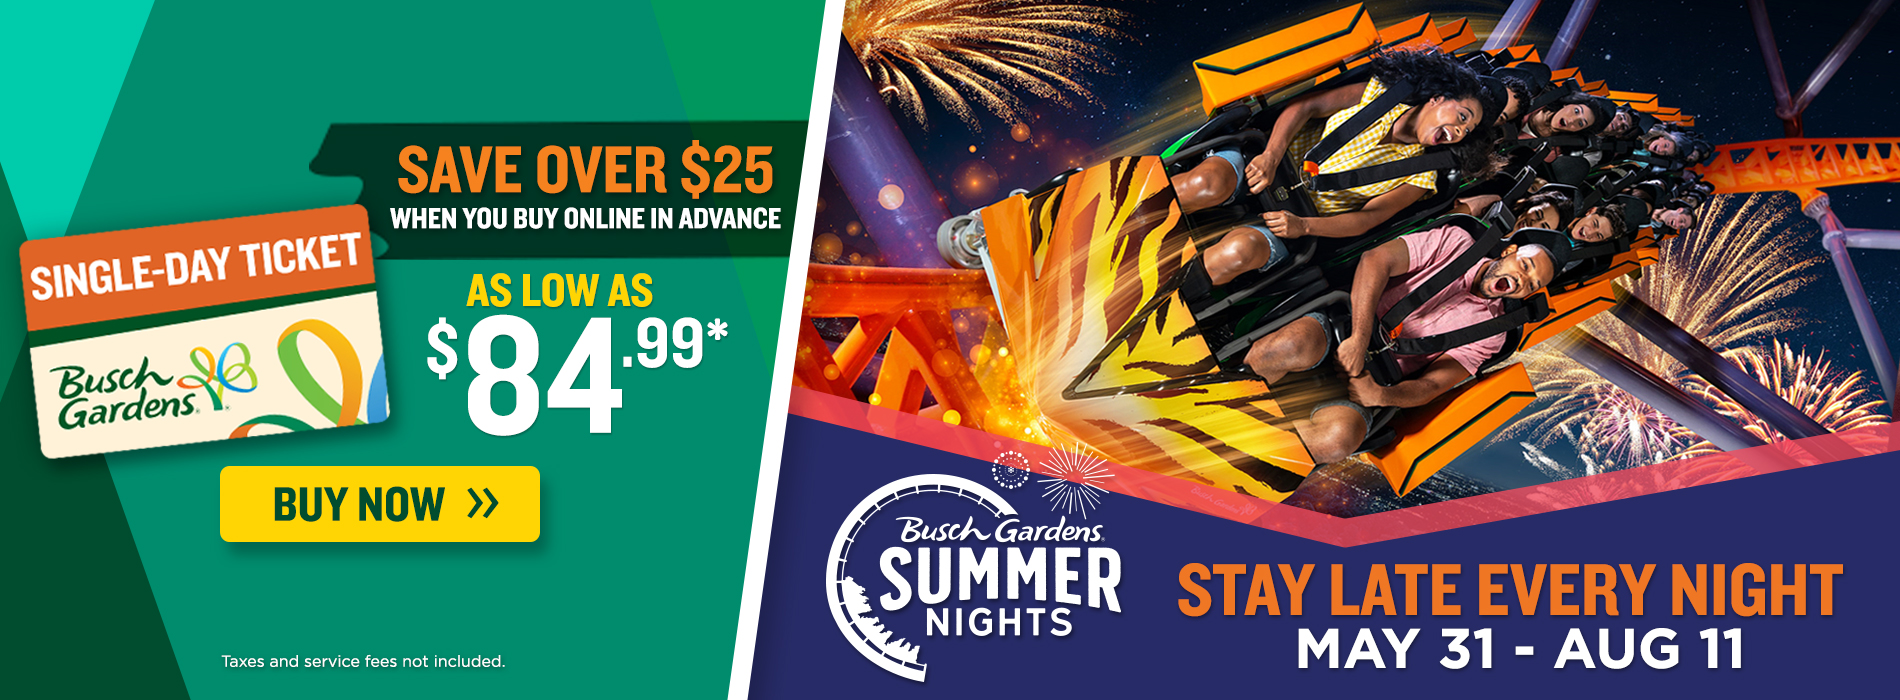 Save over $25 when you buy in advance! Enjoy Summer Nights at Busch Gardens until August 11!